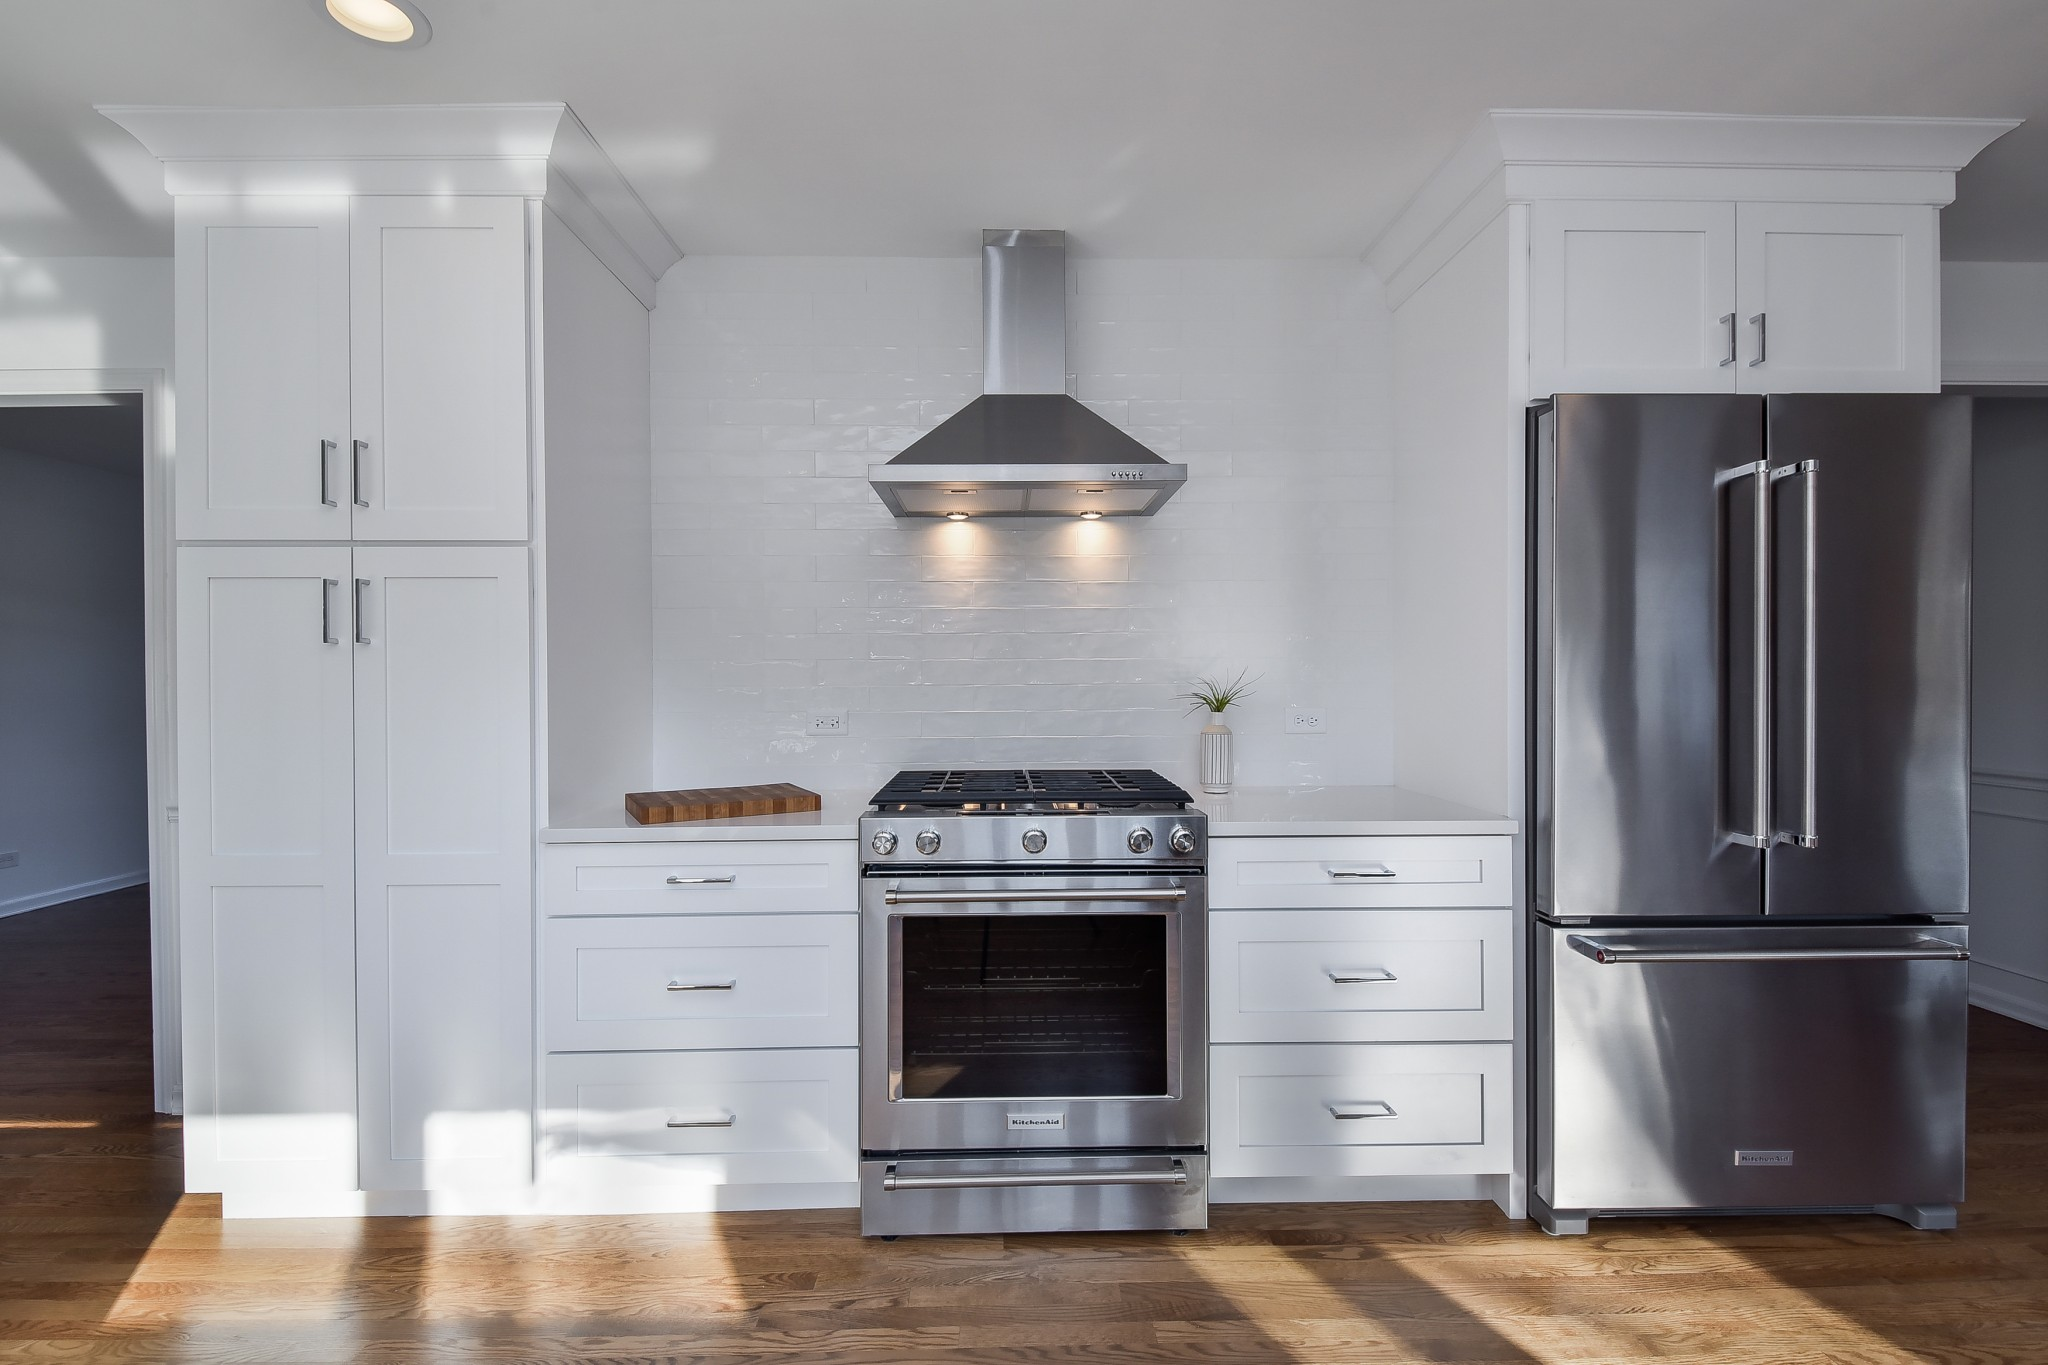 Modern Home Appliances that are Important for Your Home